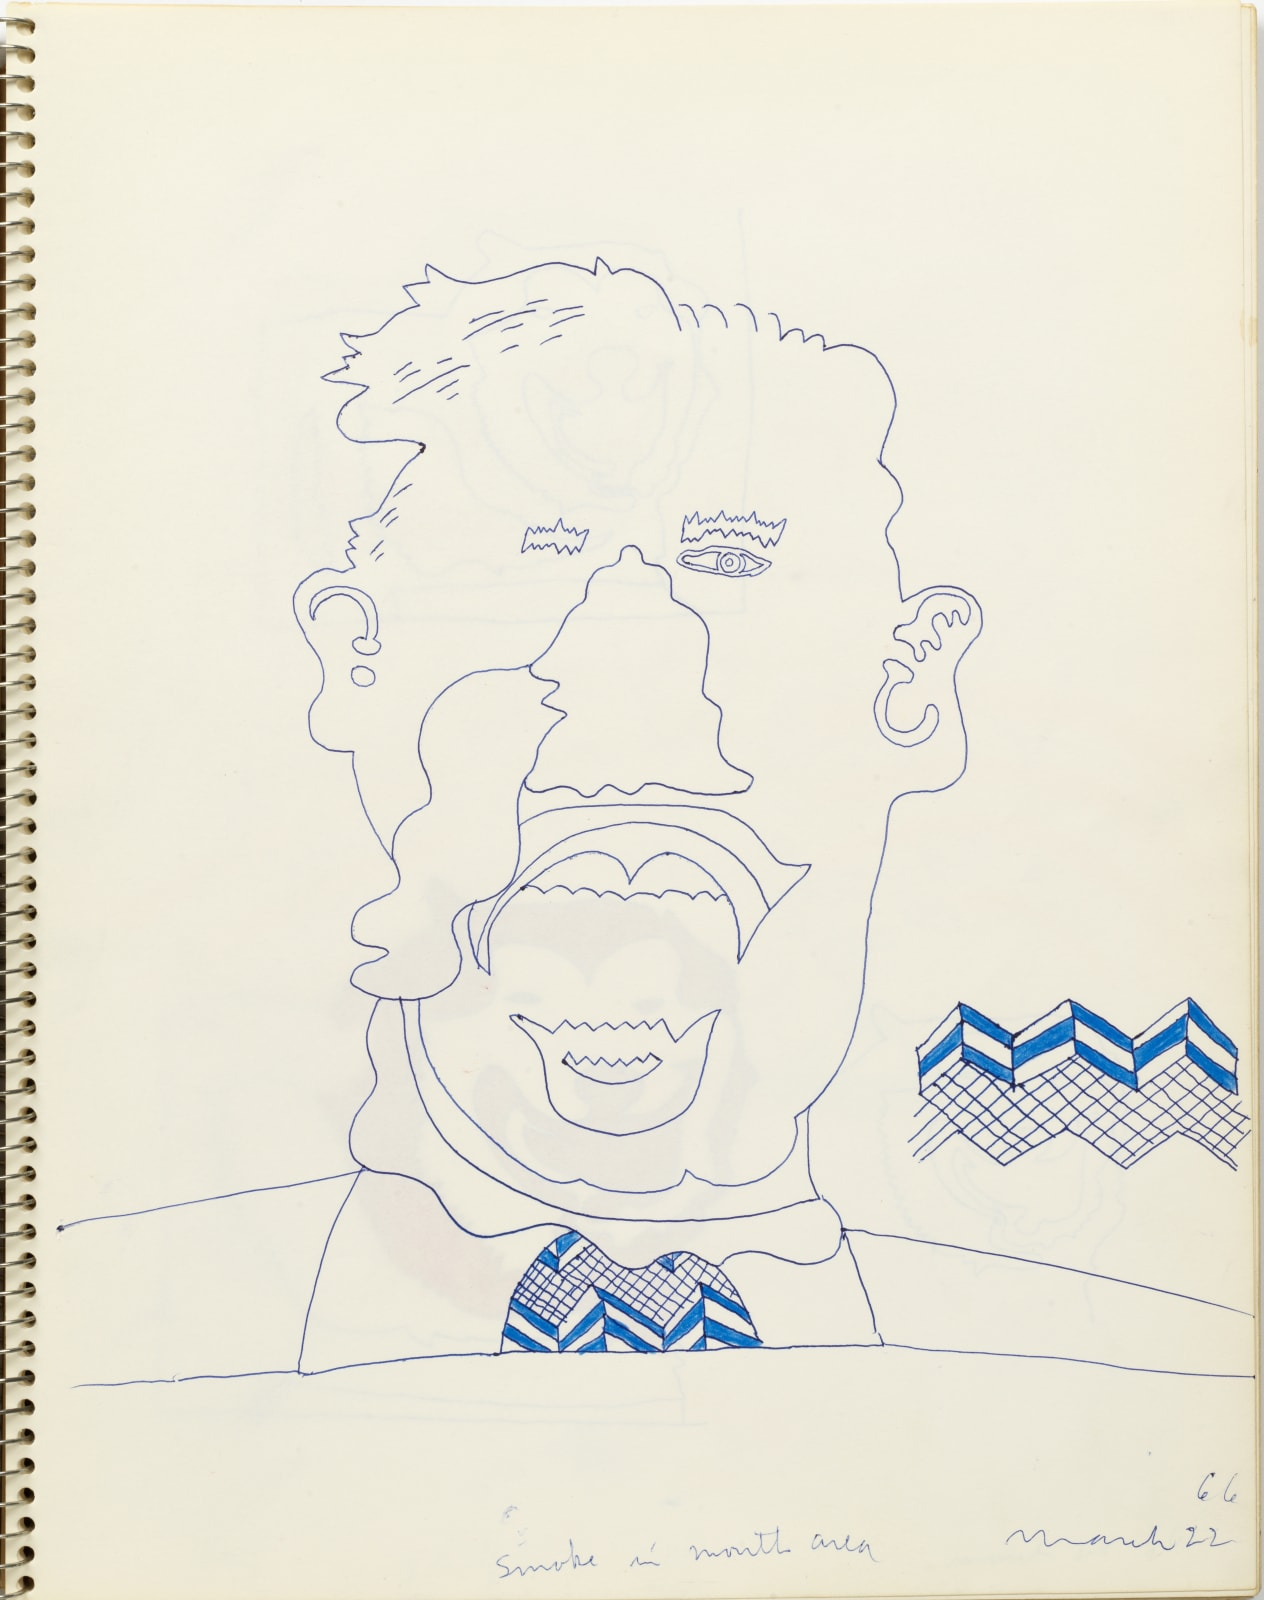 Untitled, March 22, 1966, colored pencil and ball-point pen on sketchbook paper, 14 x 11 inches